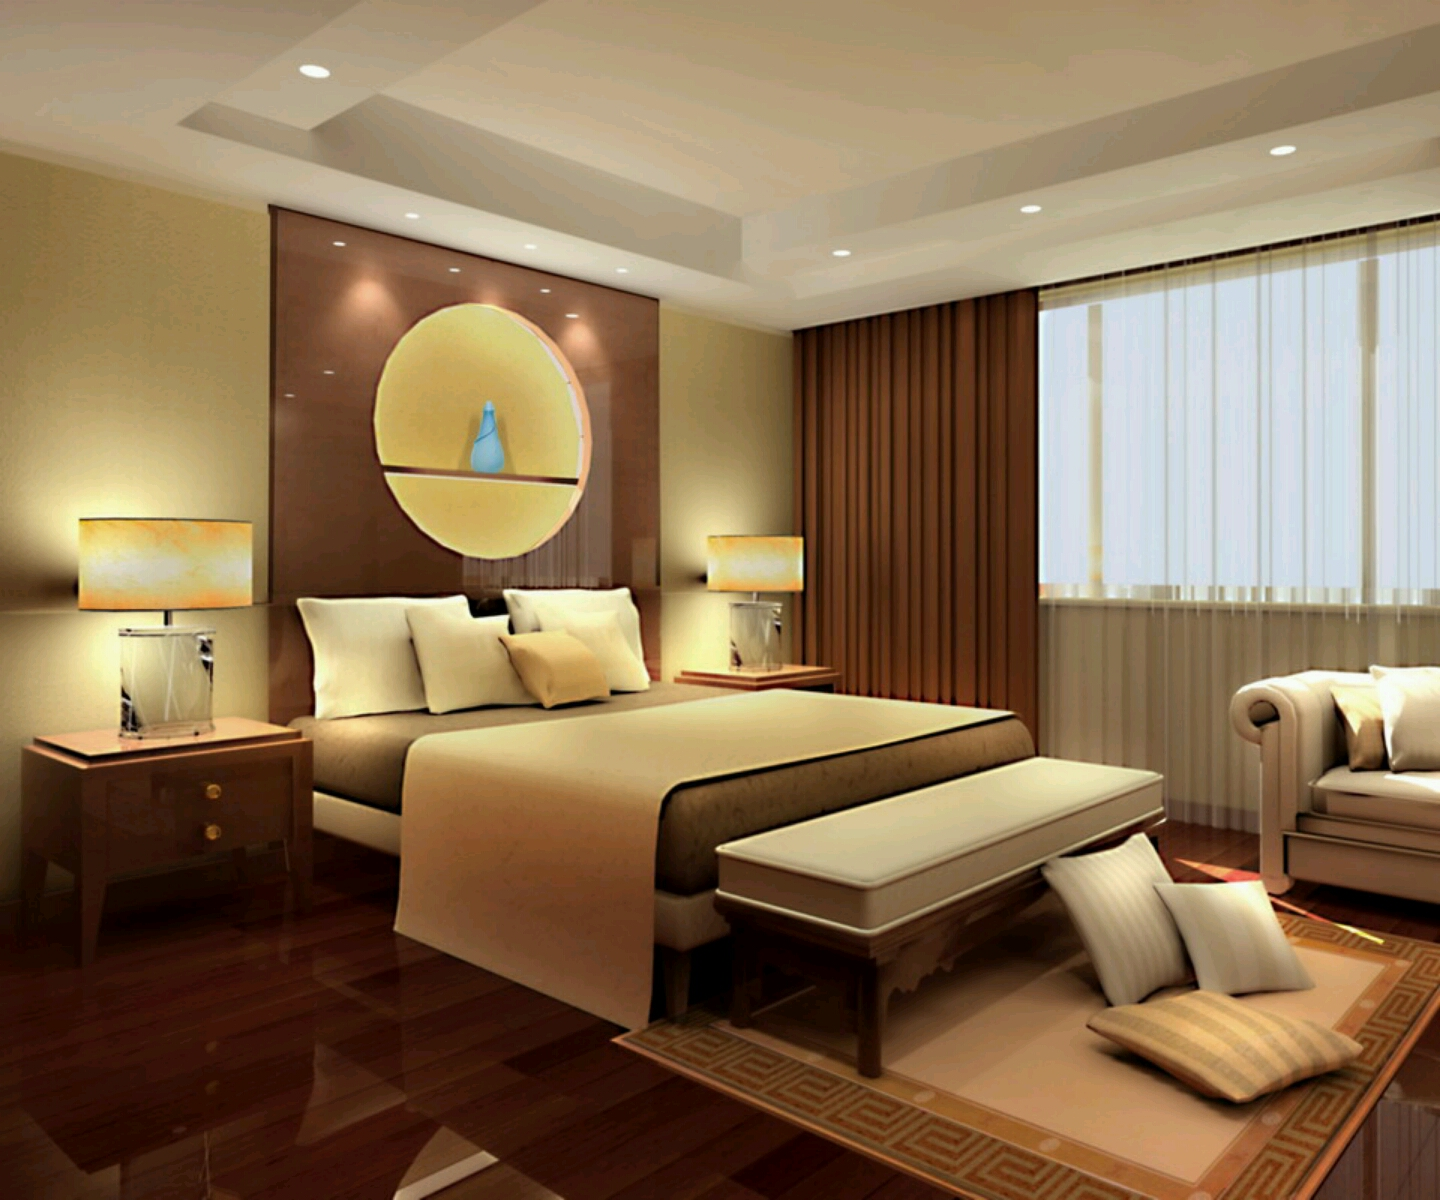 Beautiful Bed Rooms Endearing With Beautiful Bedroom Interior Designs Image